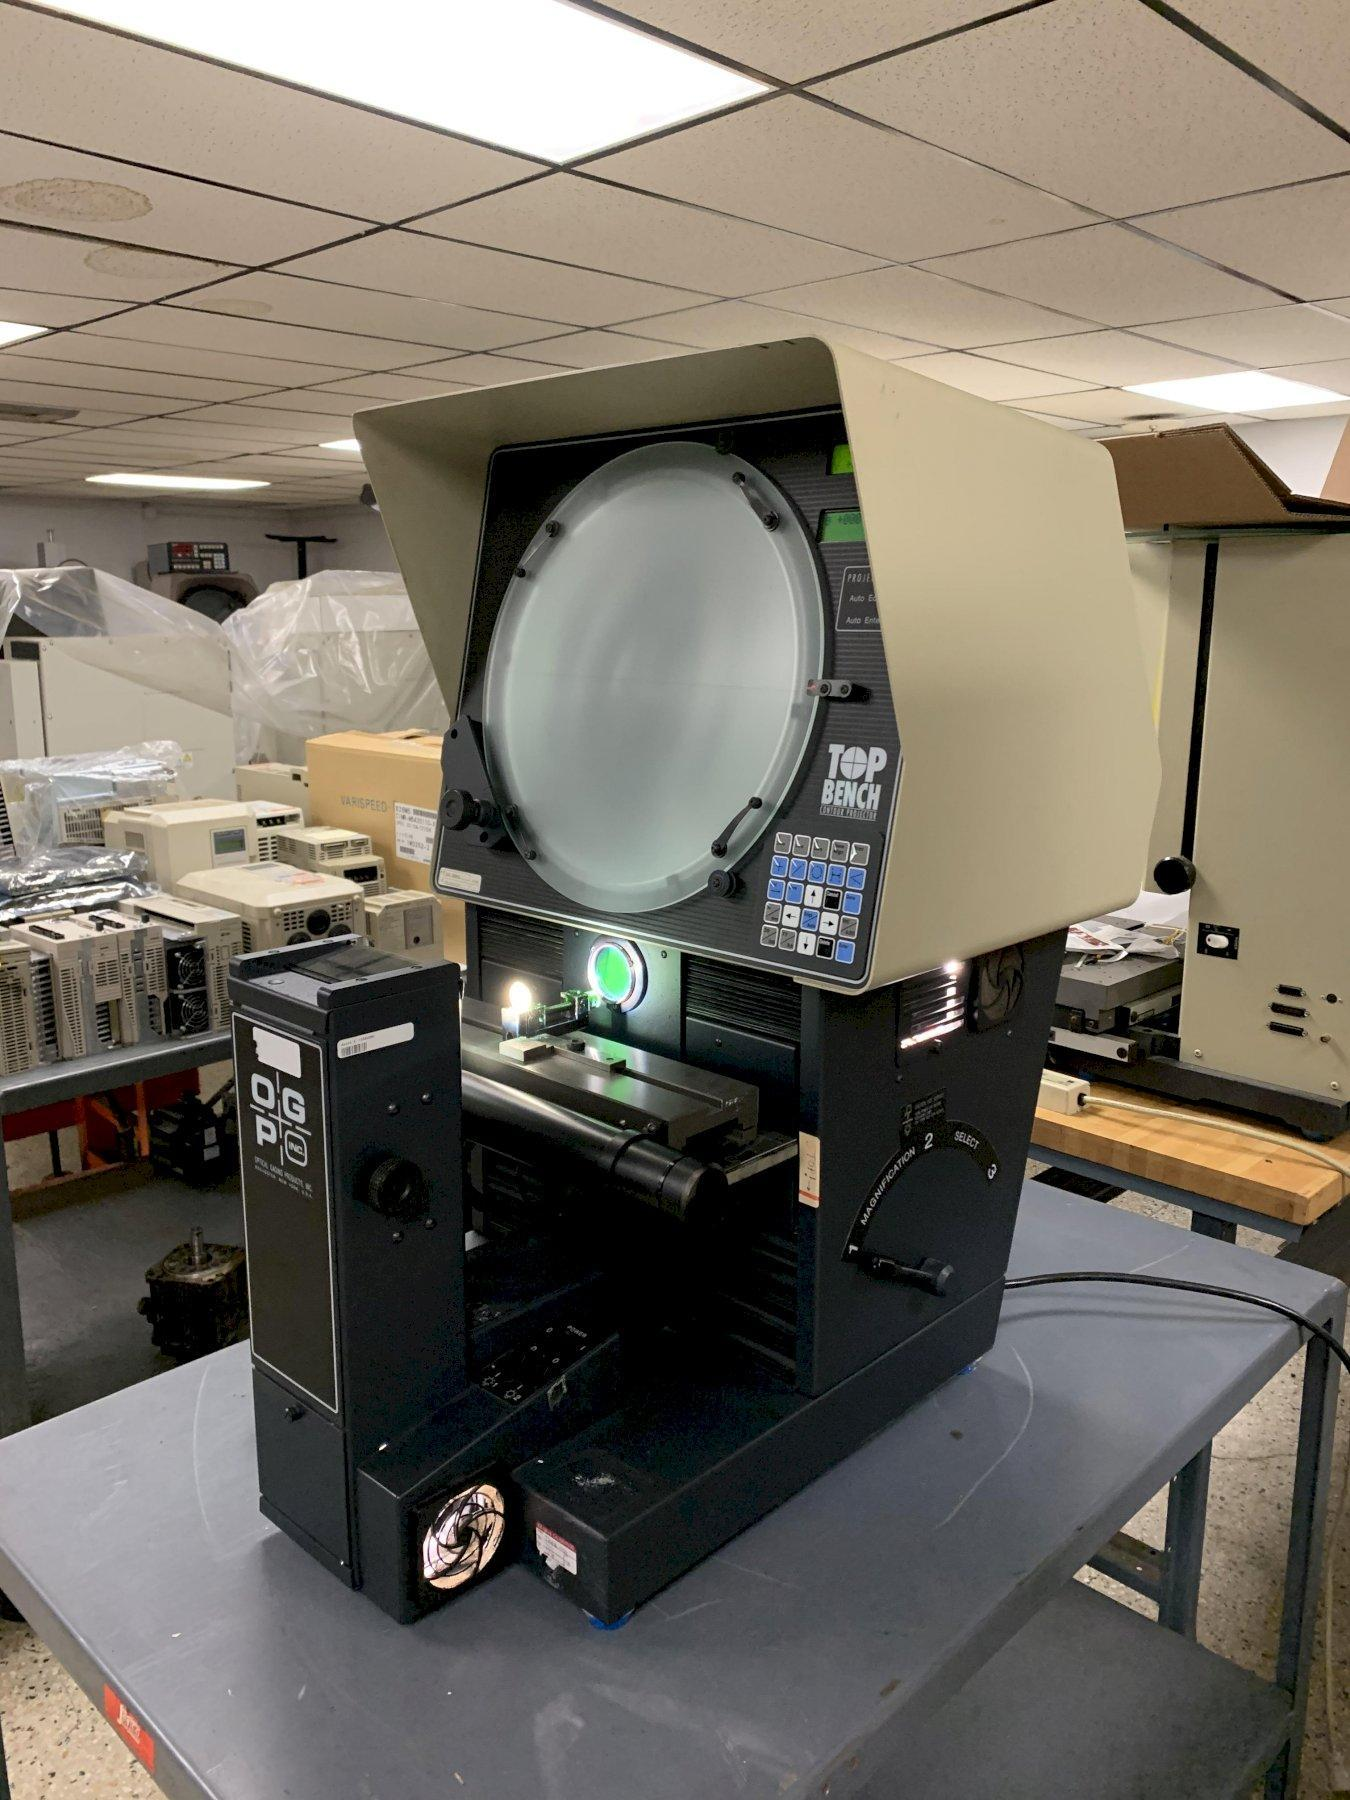 """OGP """"Top Bench"""" Optical Comparator, S/N TB12061327."""